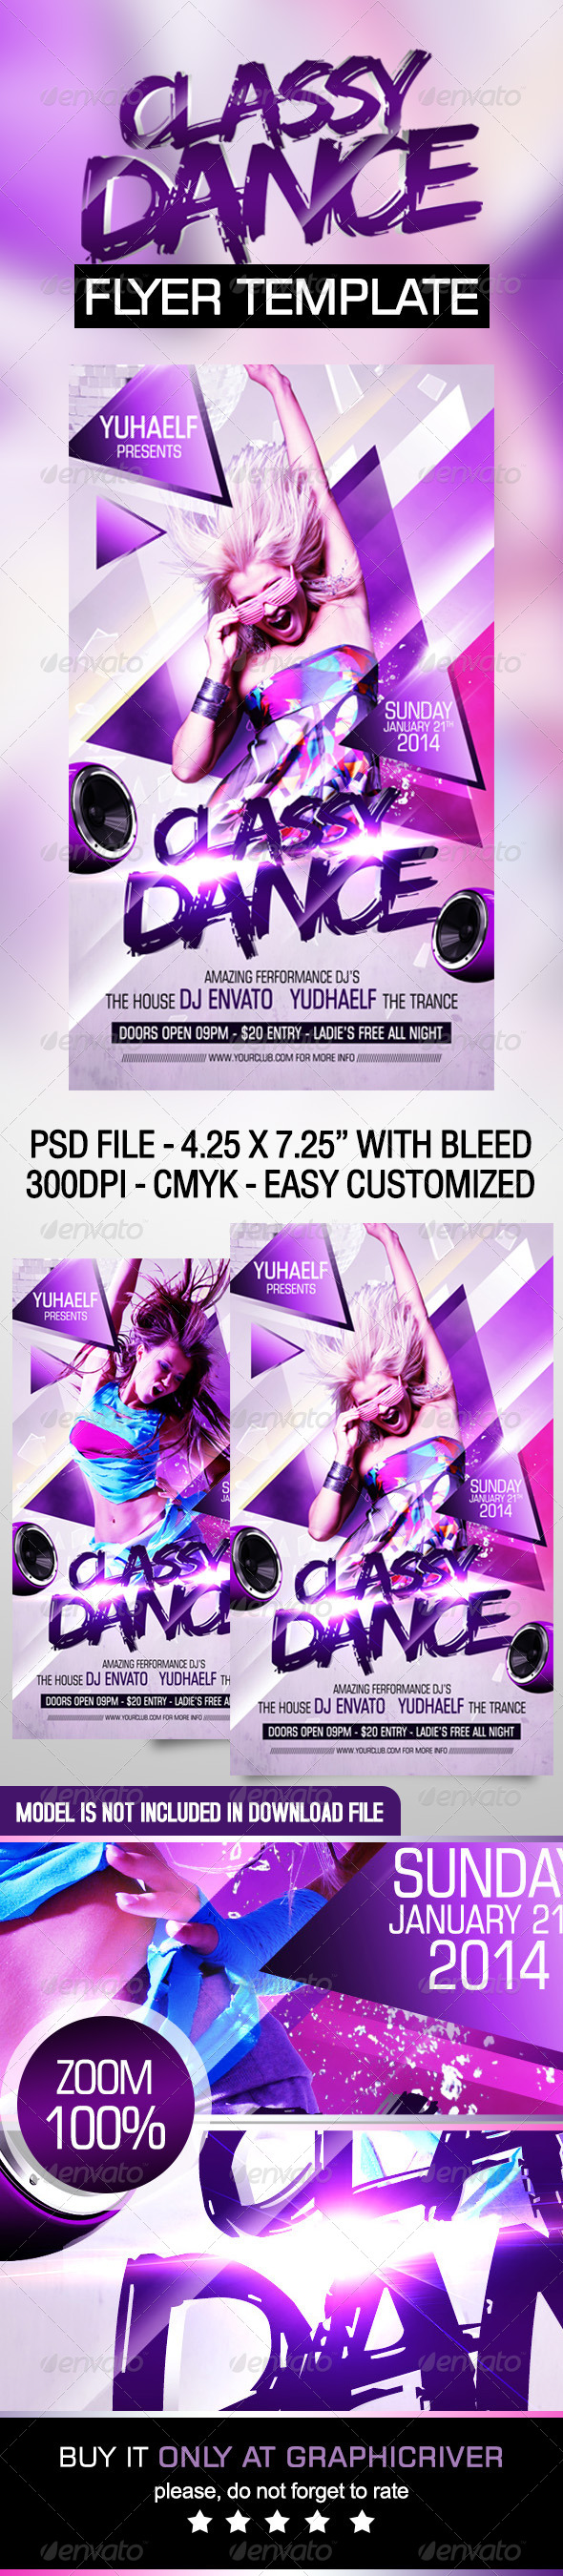 GraphicRiver Classy Dance Flyer Template 6977957